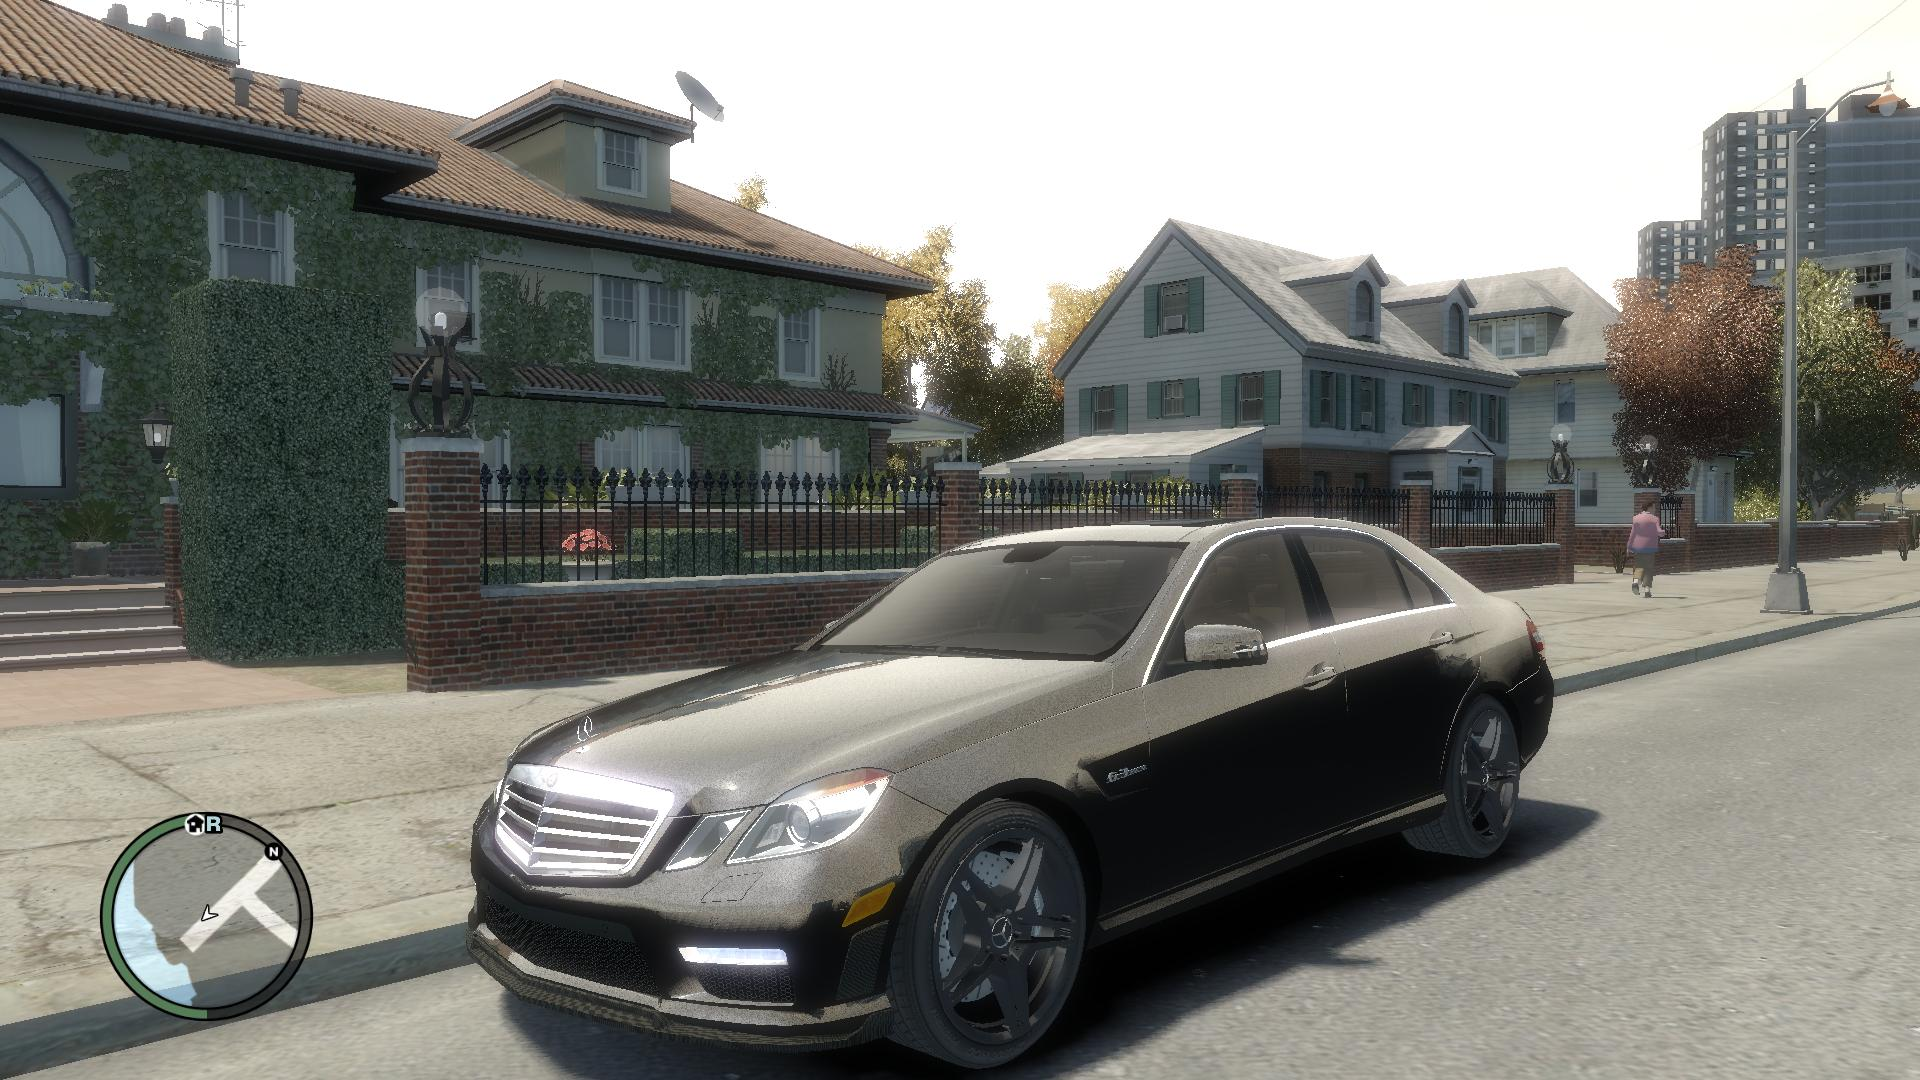 Mercedes-Benz E63 AMG image - Real Cars For GTA 4 mod for ...